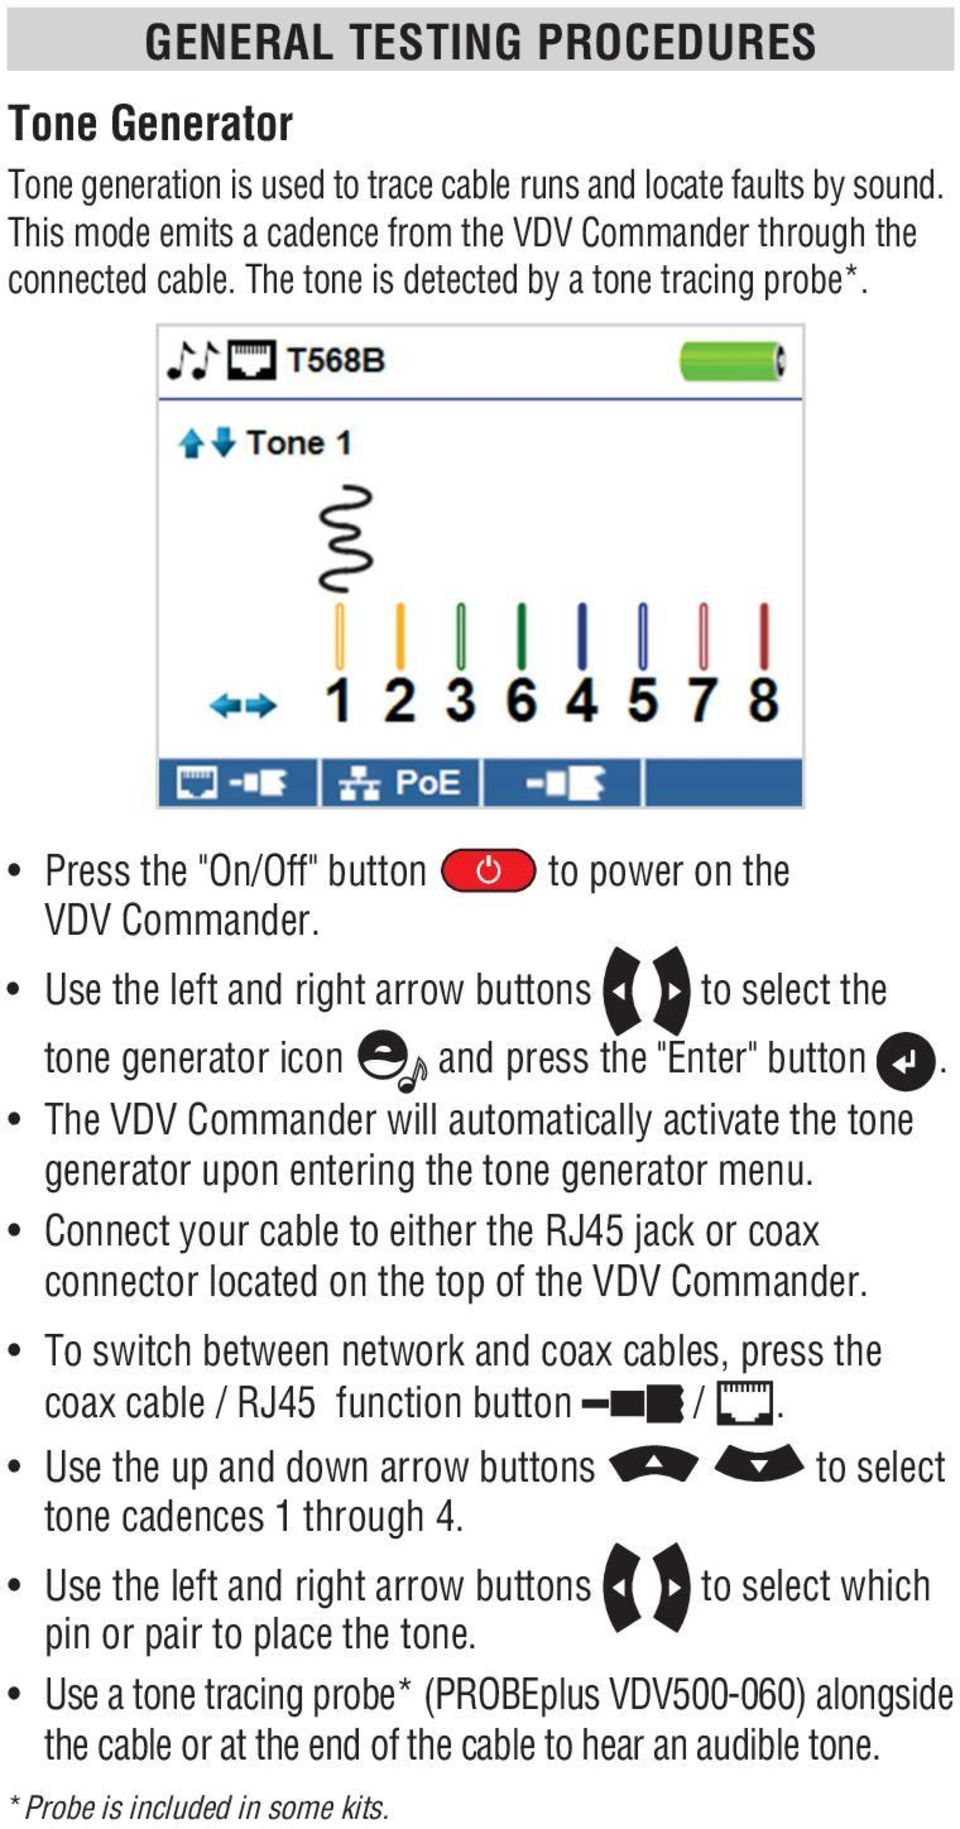 "Use the left and right arrow buttons to select the tone generator icon and press the ""Enter"" button."